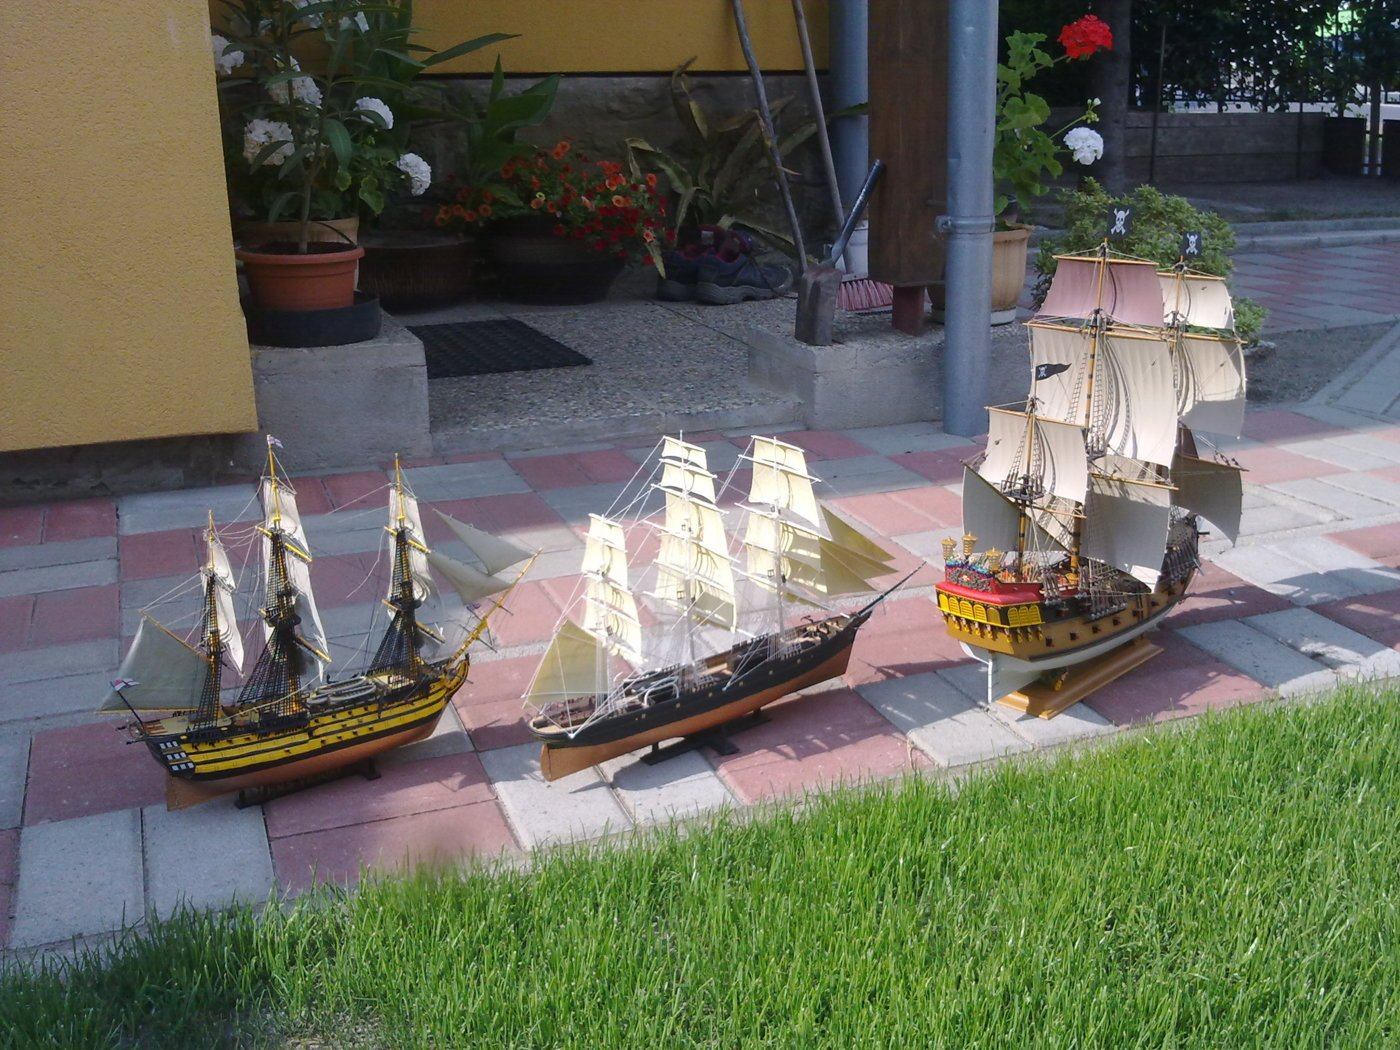 Pirate ship Revell 1/72, H.M.S. Victory Revell and Cuty Shark - all my older plastic production